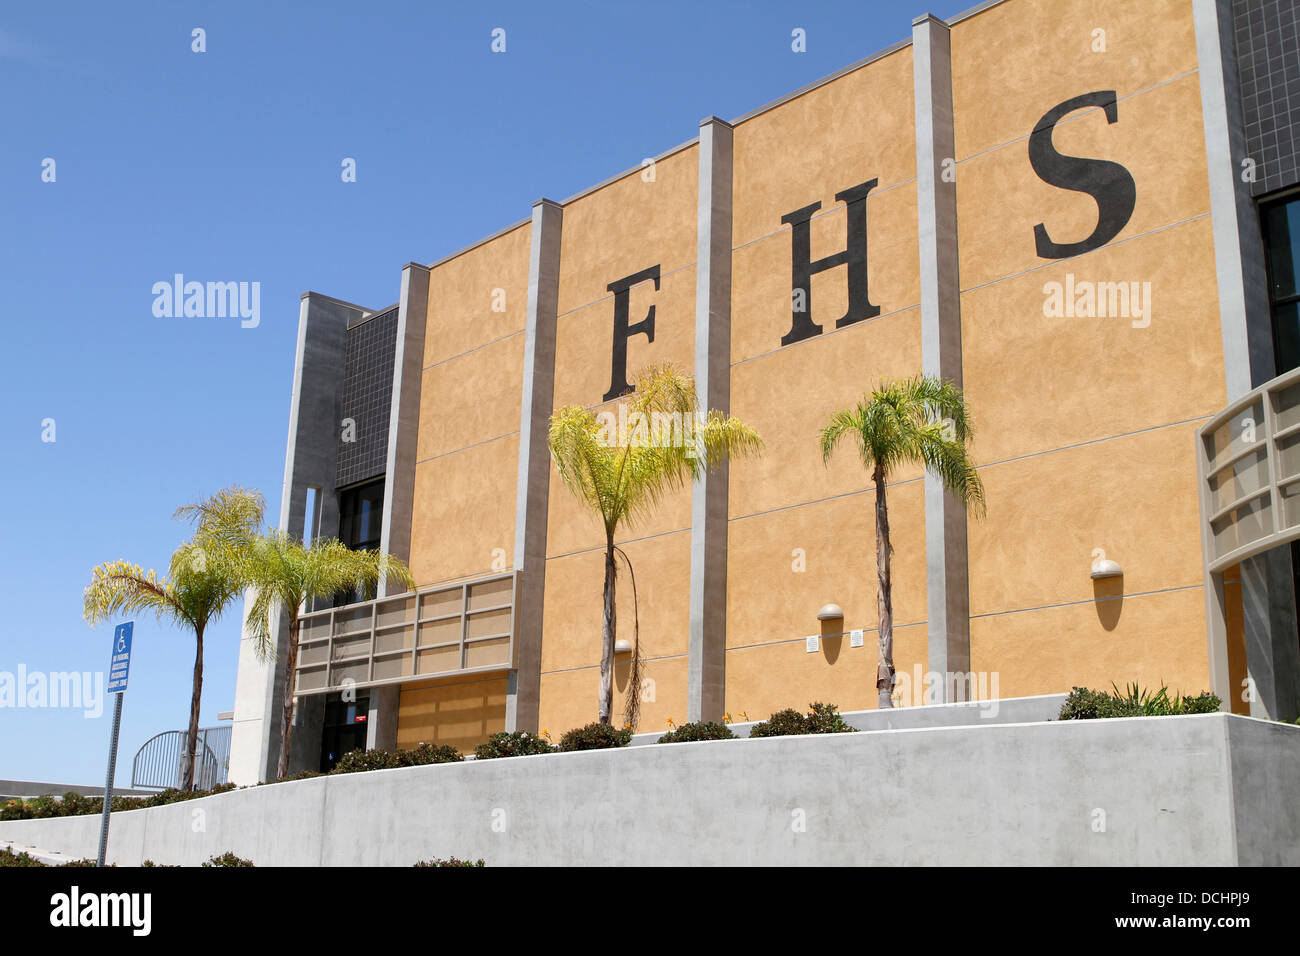 A view of the event center at Foothill High School. 19251 Dodge Ave  Santa Ana, CA 92705 - Stock Image